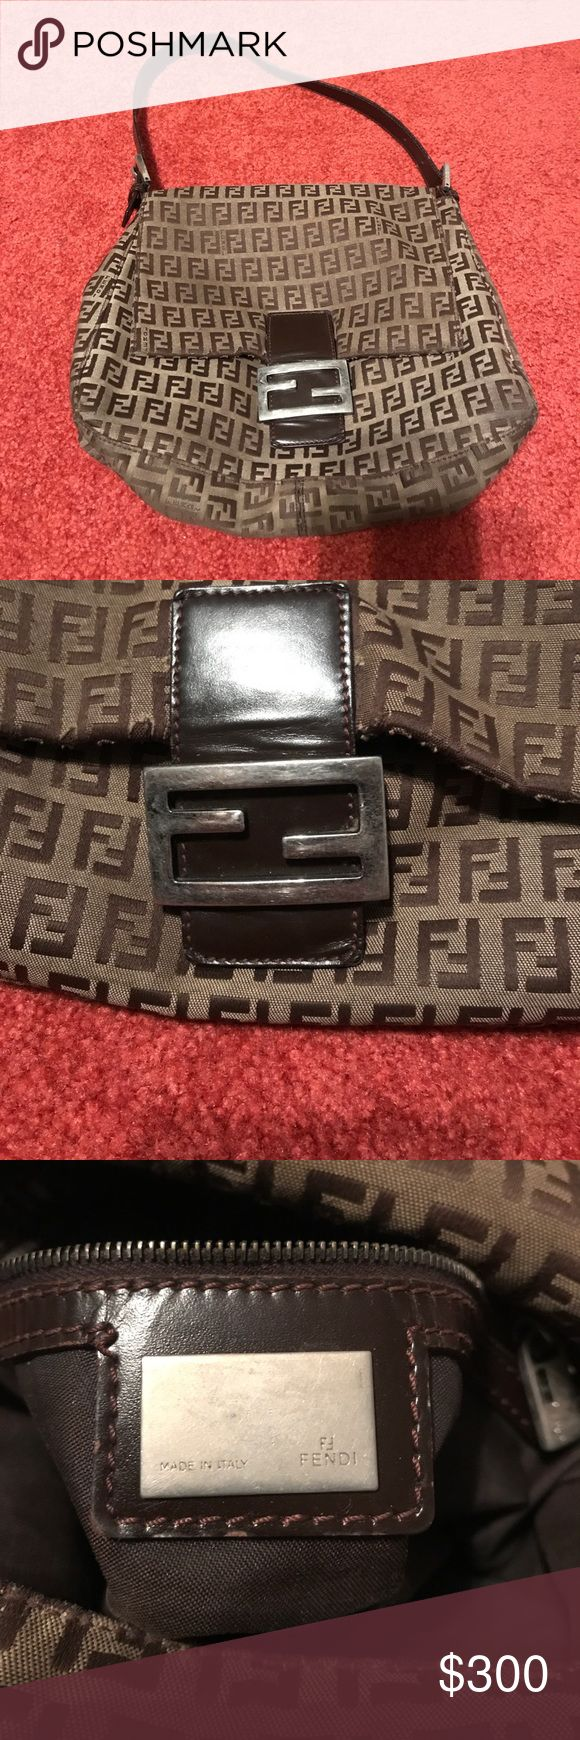 Fendi Mama Forever Bag Brown Fendi logo mama forever bag. Used. Good condition. Slight wear in strap. Normal wear and tear. Fendi Bags Shoulder Bags